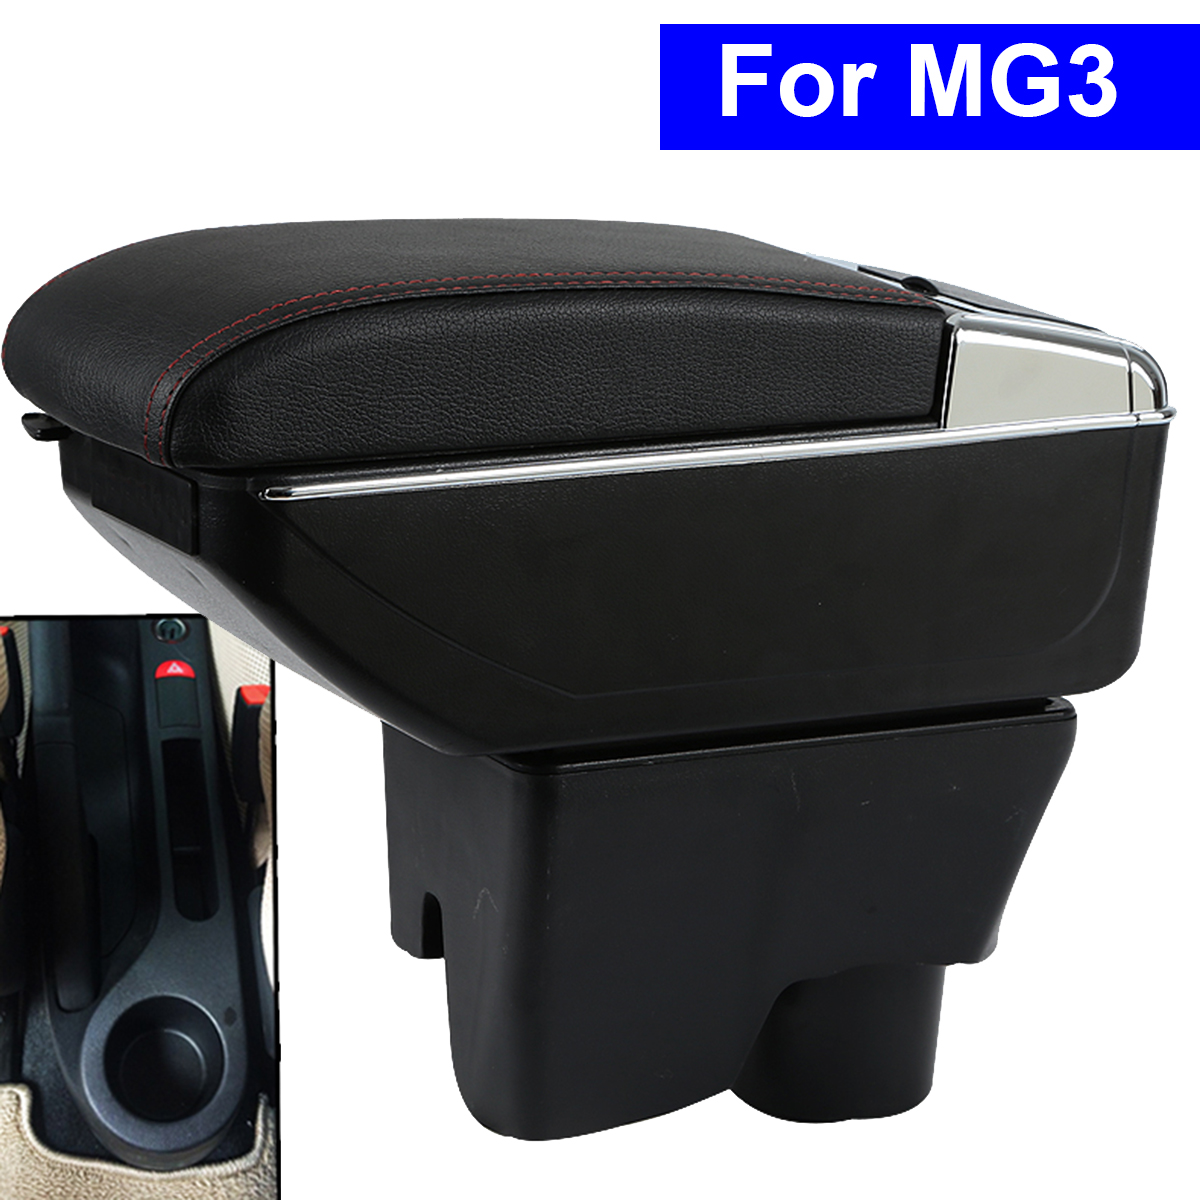 Leather Car Interior Parts Center Console Armrest Box for MG3 2011 2012 2013 2014Auto Armrests with USB CUP Holder Free Shipping universal leather car armrest central store content storage box with cup holder center console armrests free shipping